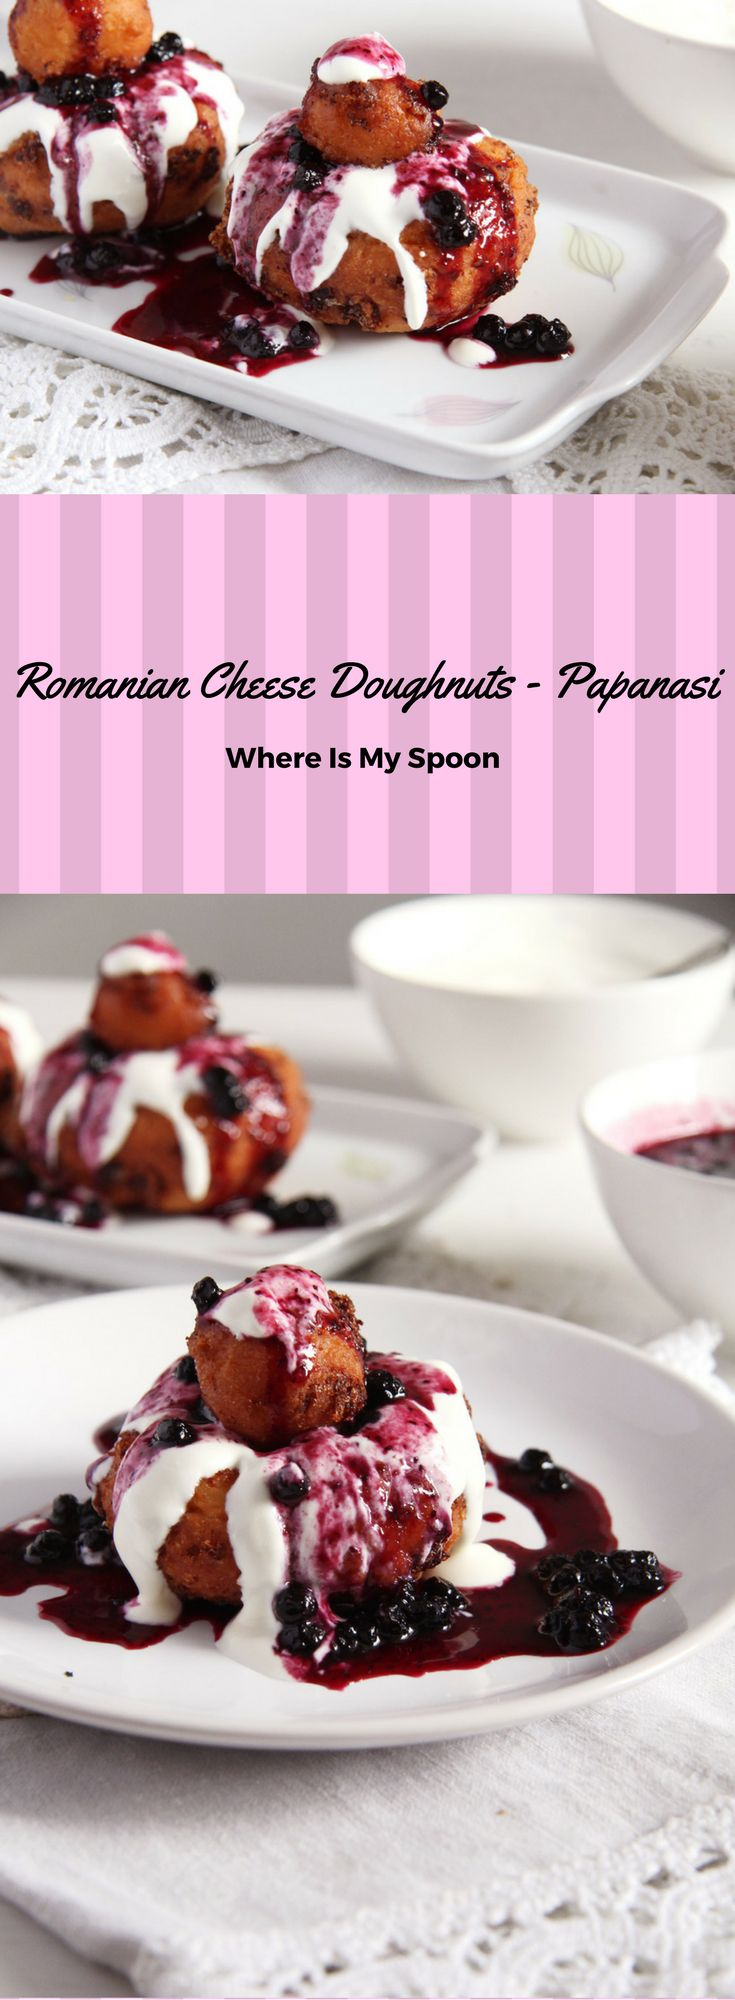 Romanian Cheese Doughnuts – Papanasi